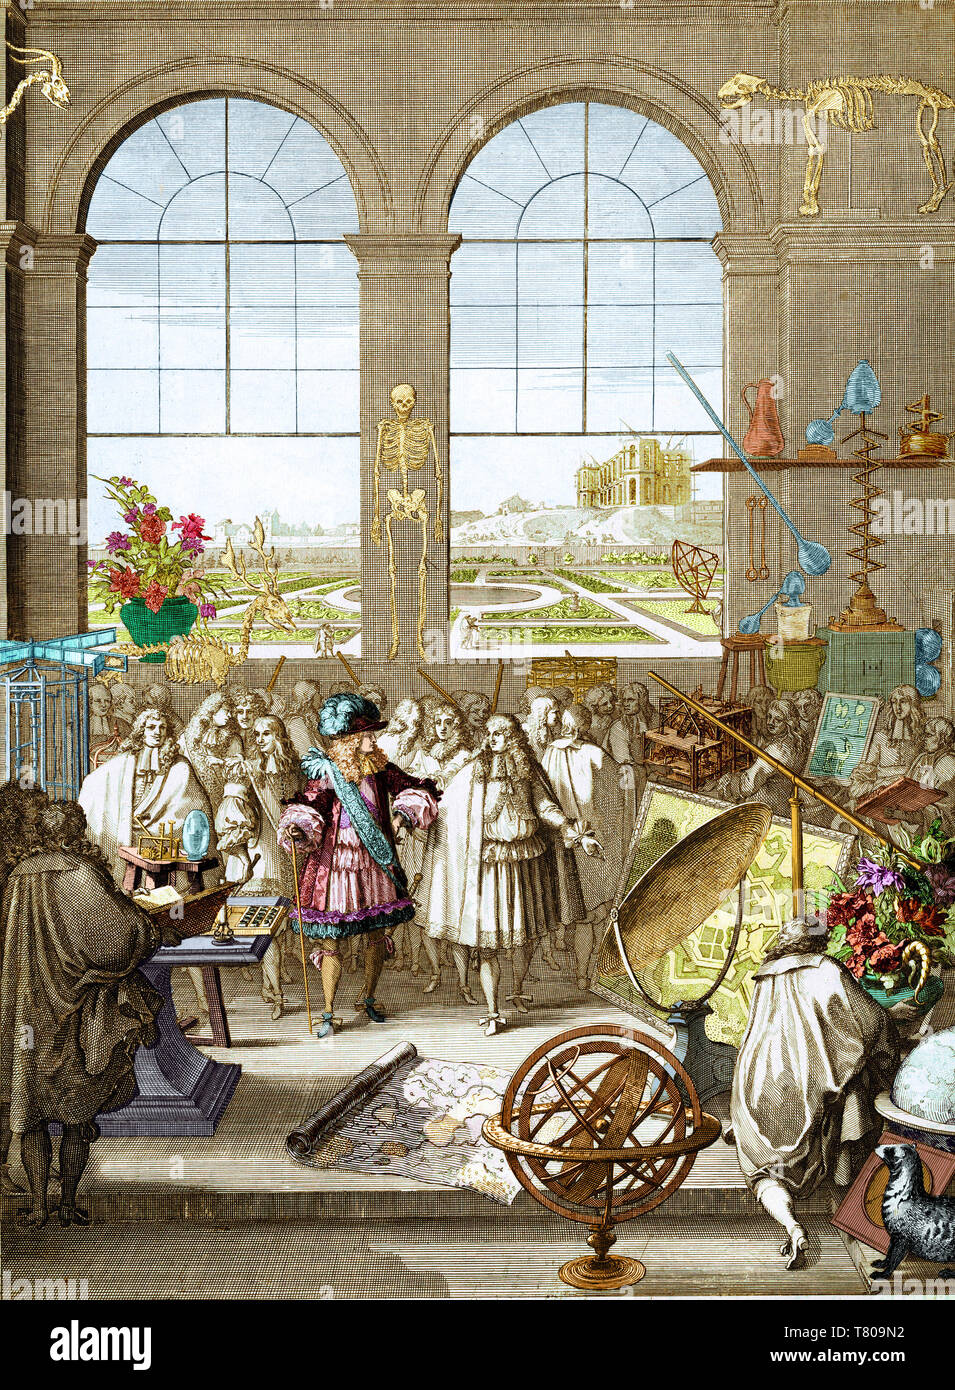 Louis XIV Visiting Royal Academy of Sciences, 1671 - Stock Image